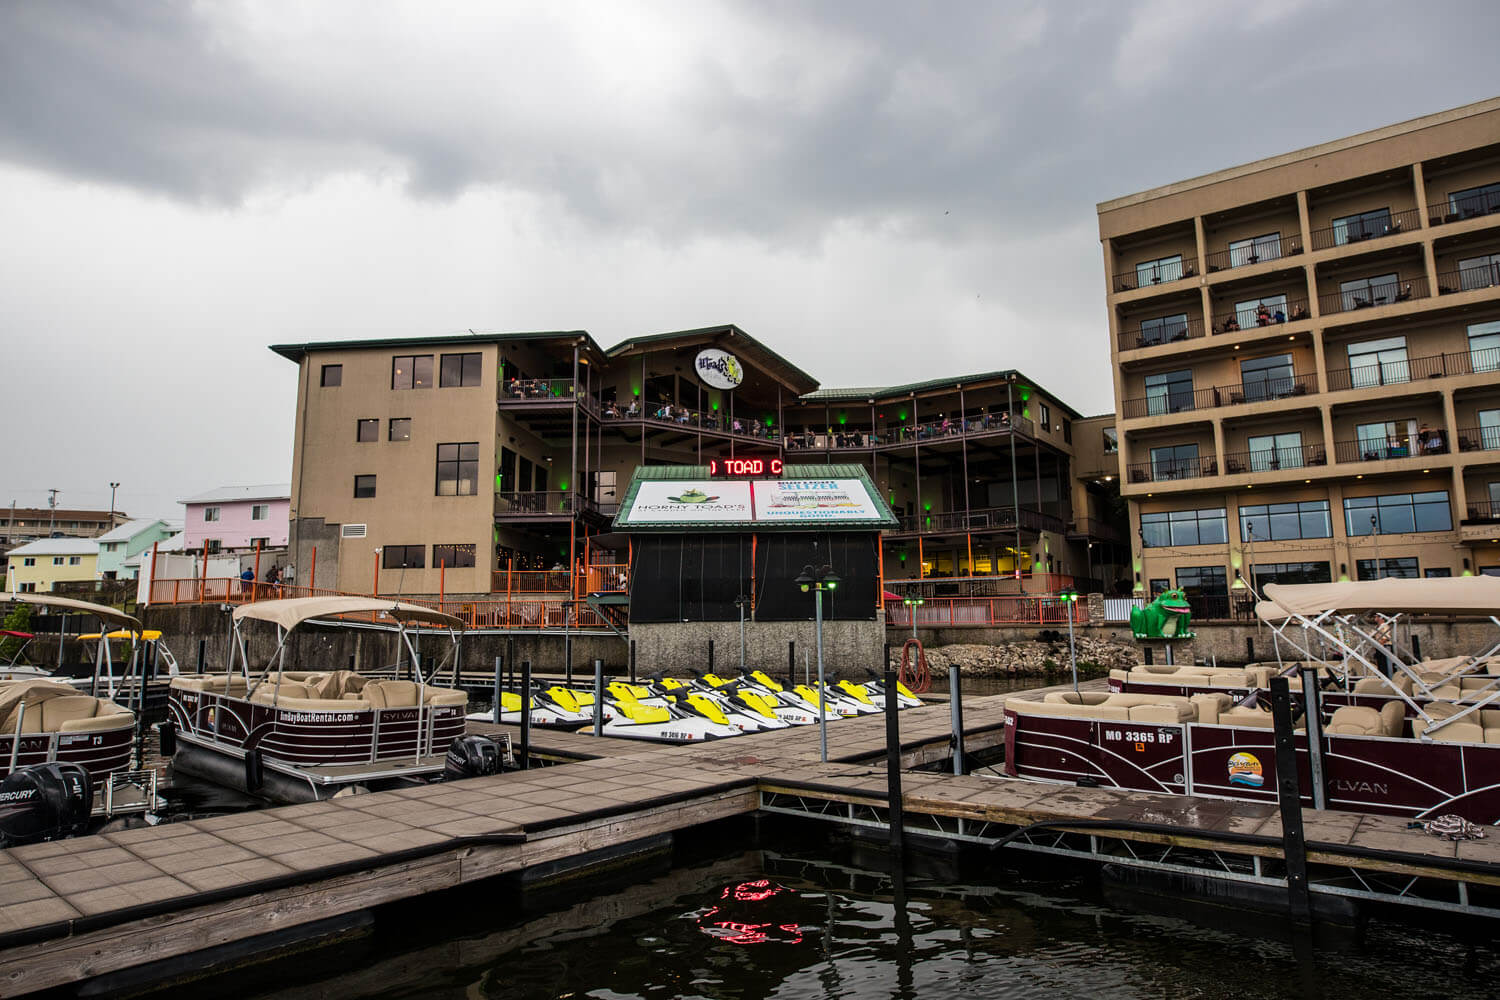 Camden on the Lake Resort viewed from the docks on Lake of the Ozarks